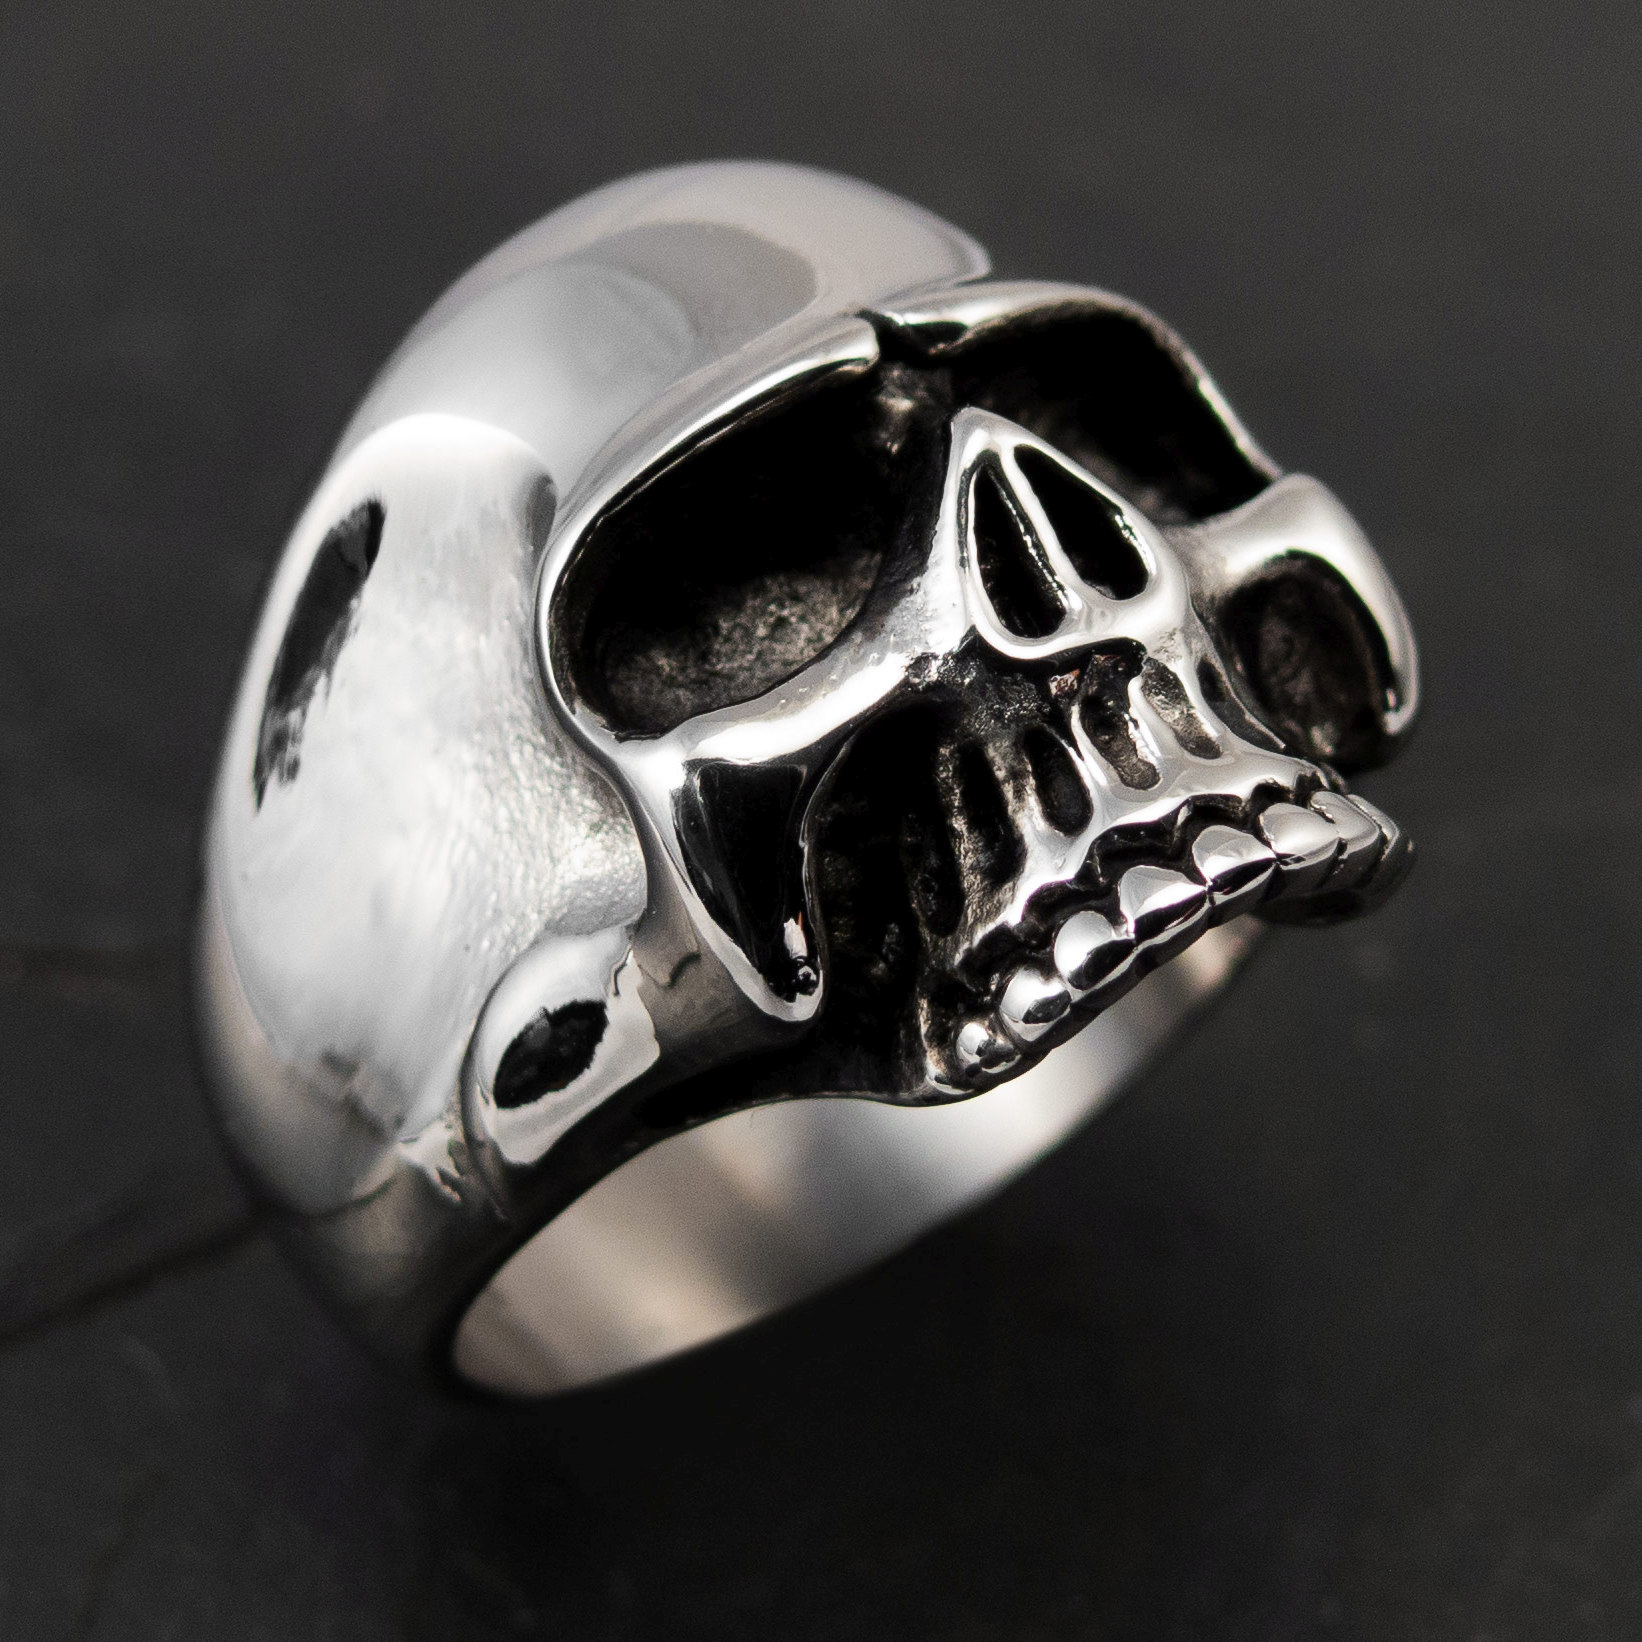 Classic Keith Richards Skull Ring made of 316L Stainless Steel